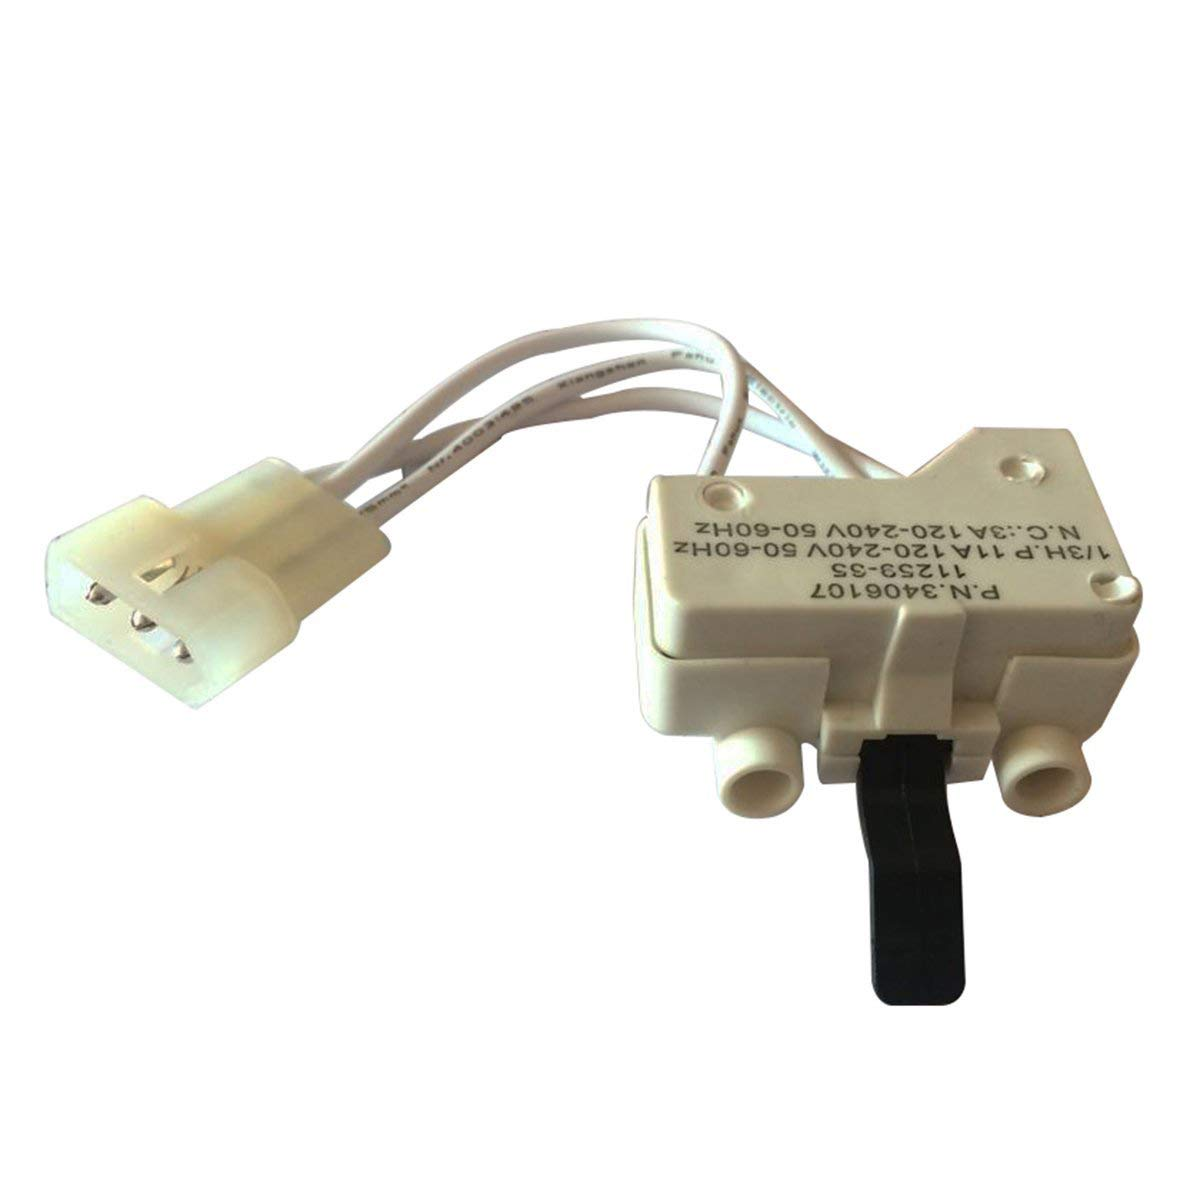 LONYE 3406107 Dryer Door Switch for Whirlpool Kenmore Sears Roper Maytag WP3406107 PS11741701 AP6008561 Replace 3406109, 3406100, 3405101, 3405100, 3406101